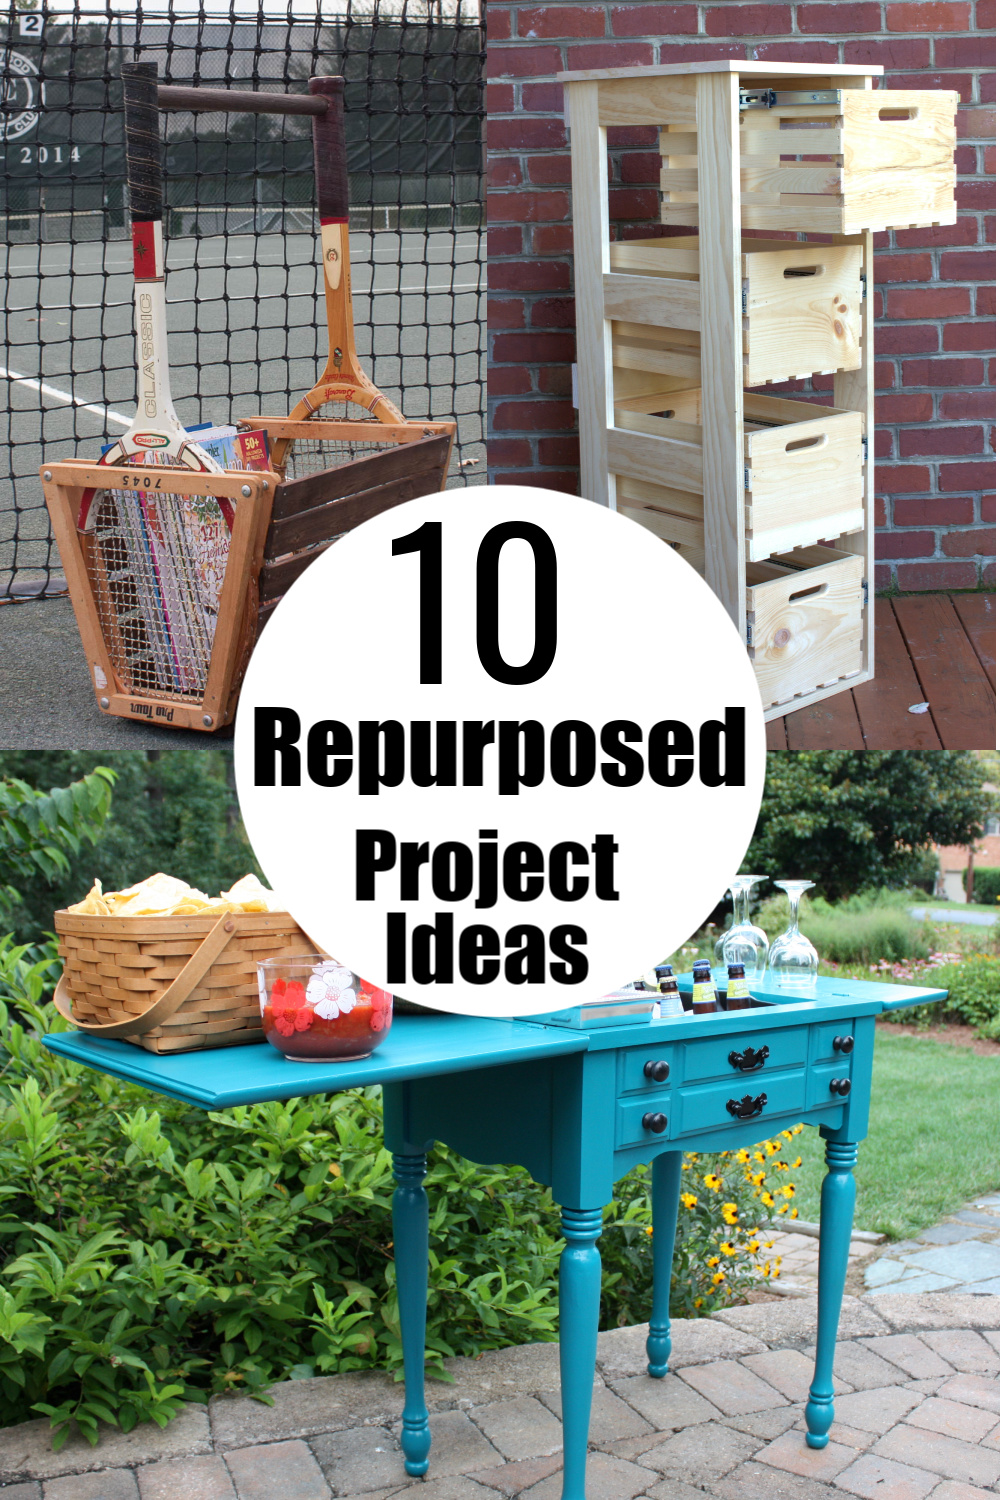 10 Repurposed Project Ideas - Discover ways to creatively repurpose items into useful home decor. #repurpose #DIY #repurposedprojects #upcycle #upcycledprojects via @spaula